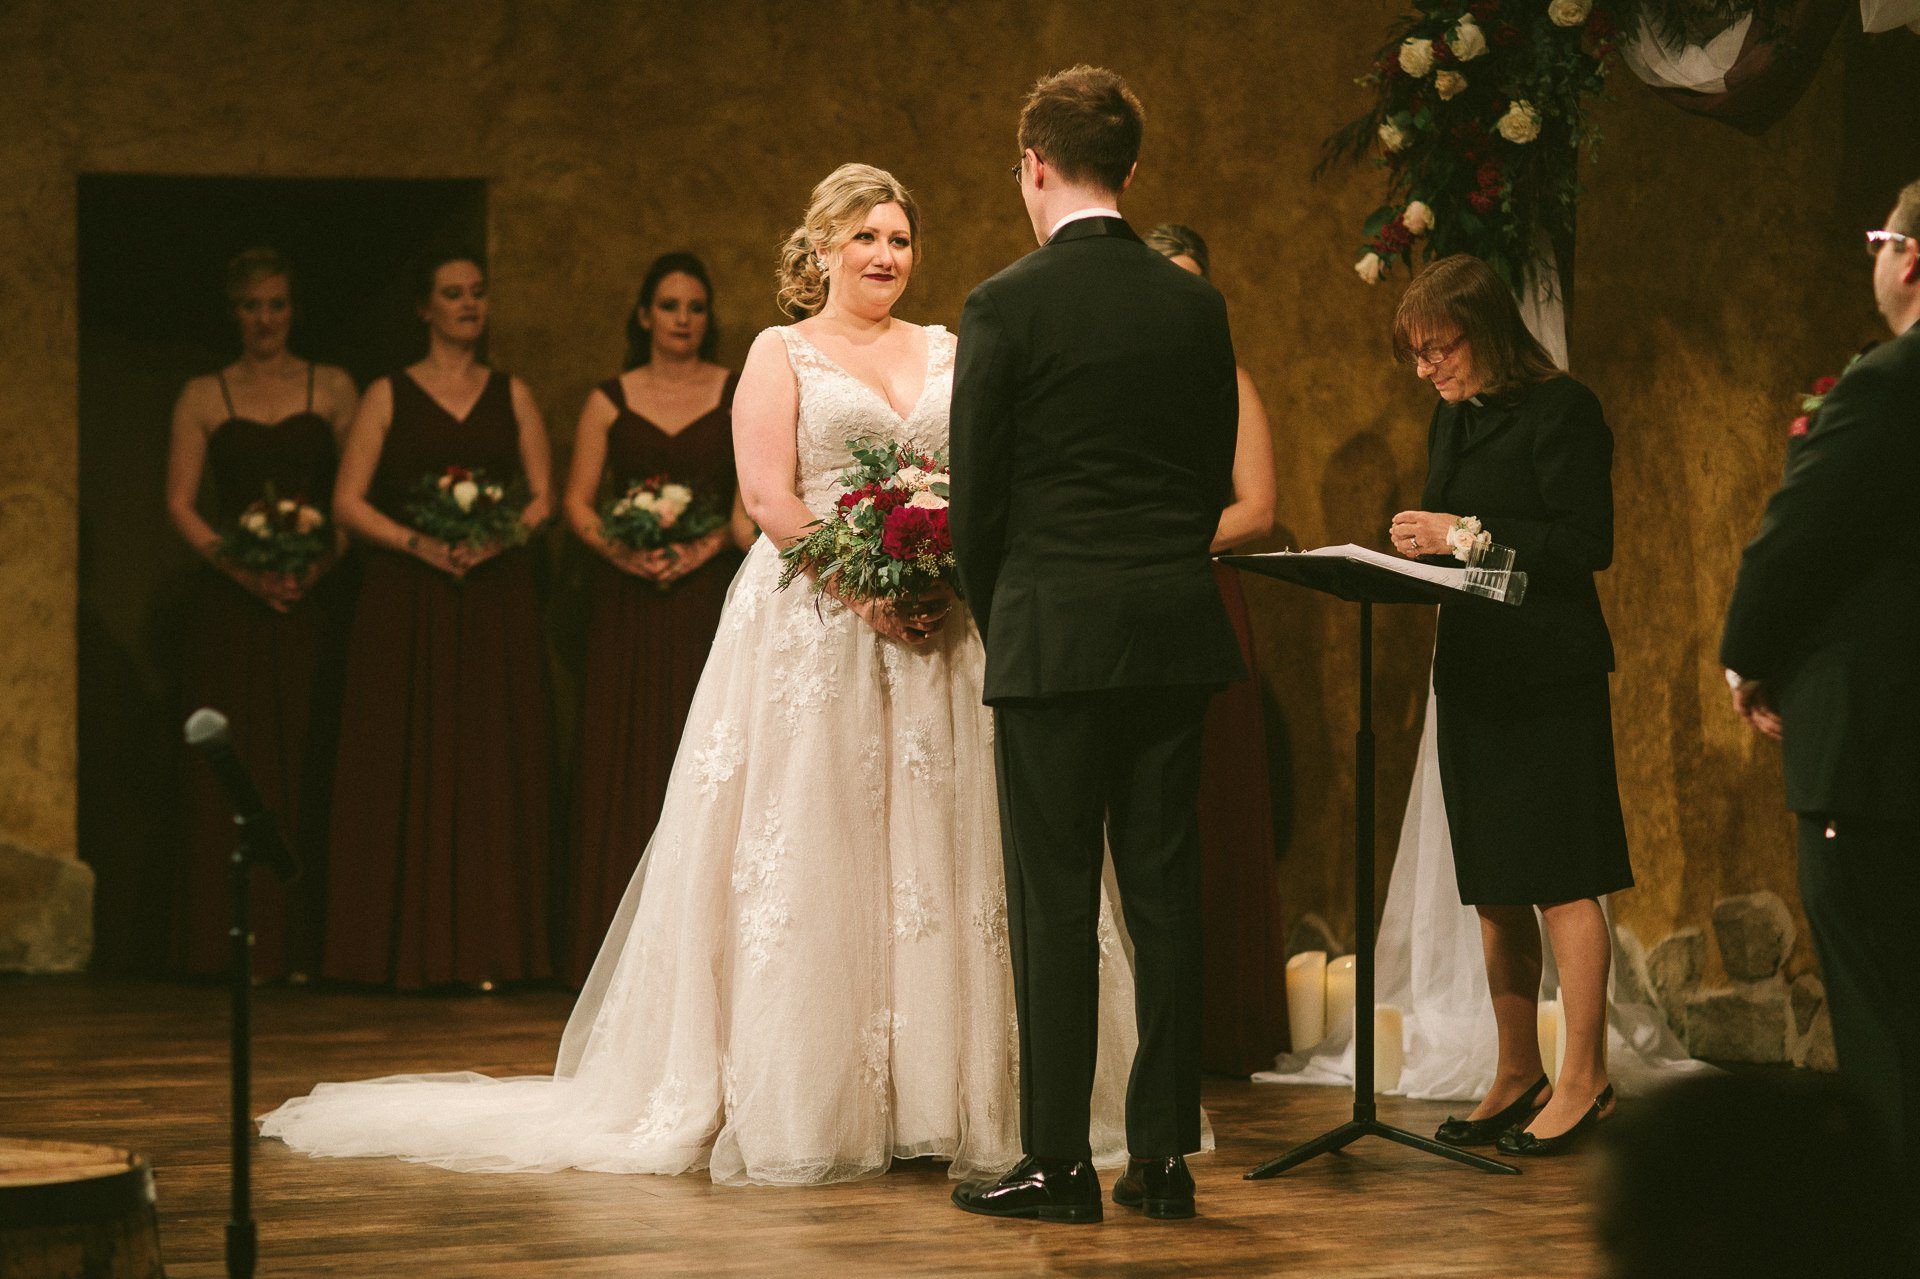 Cibreo Privato Wedding at Playhouse Square in Cleveland 1 48.jpg